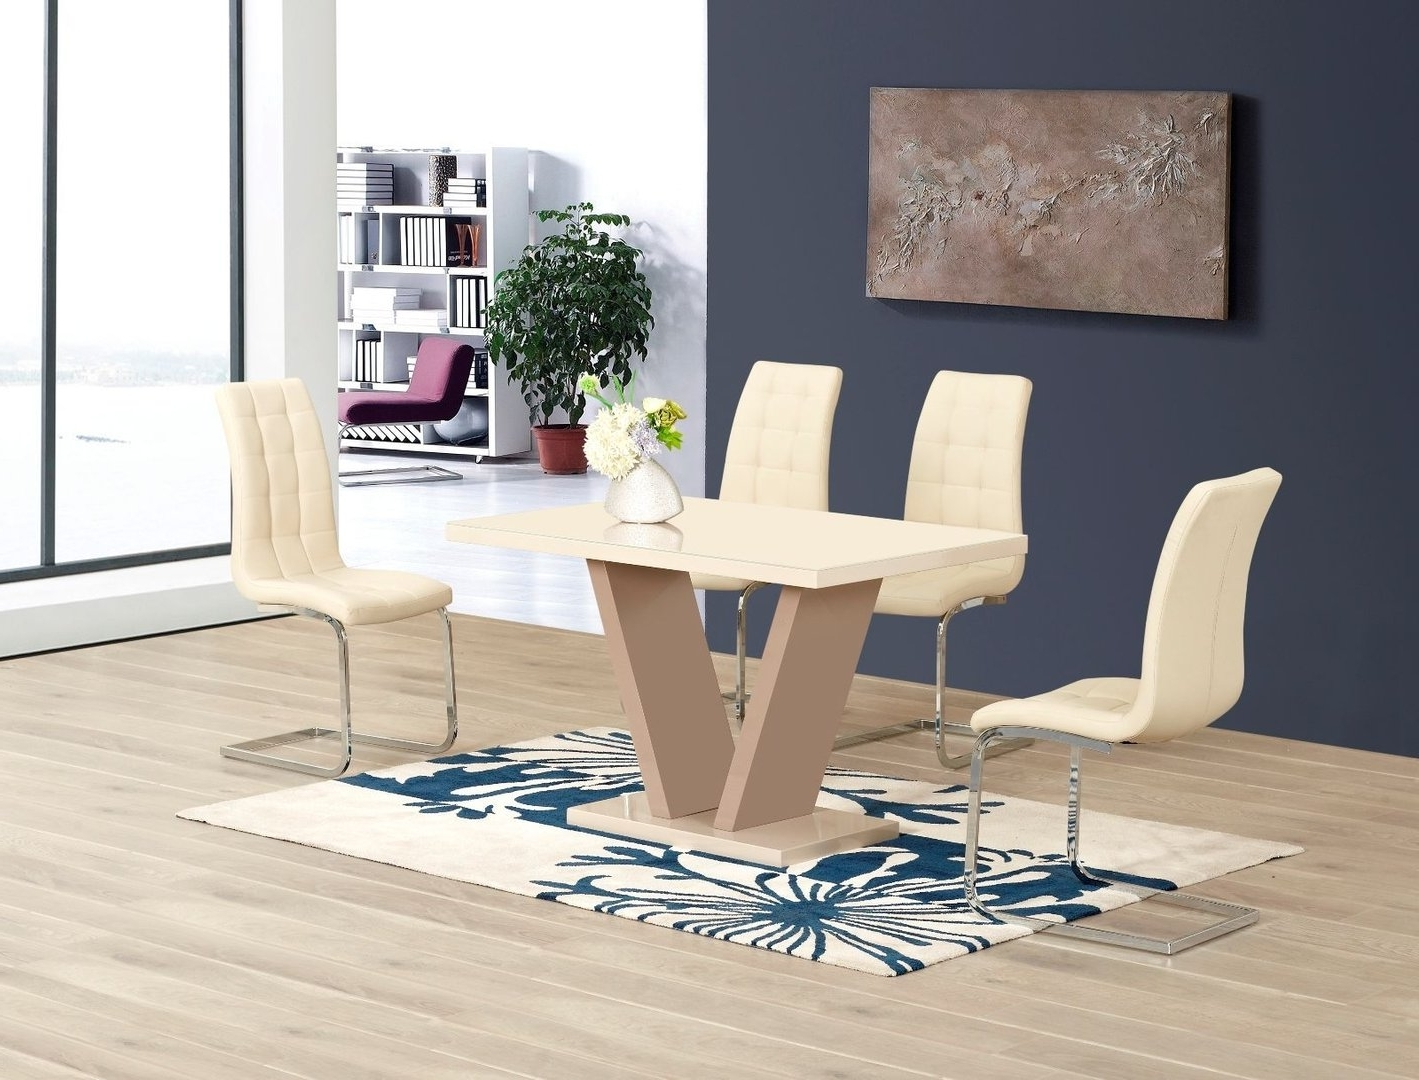 Cream High Gloss Glass Dining Table And 6 Chairs – Homegenies Regarding Favorite Glass Dining Tables And Chairs (View 3 of 25)